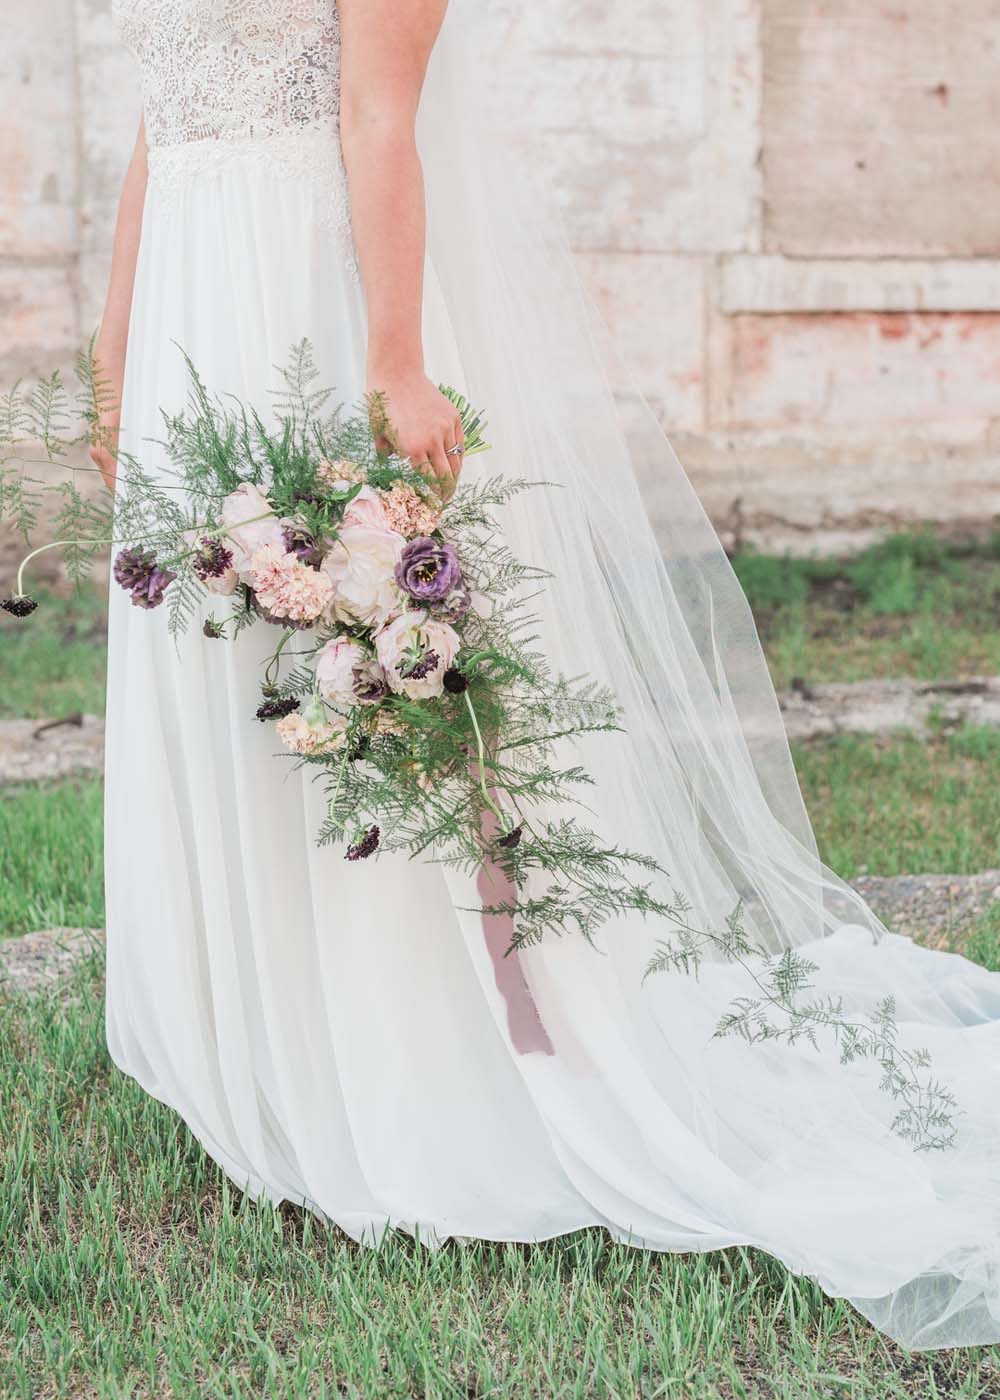 A Romantic Themed Shoot Inspired by Ruins - Dress and flowers